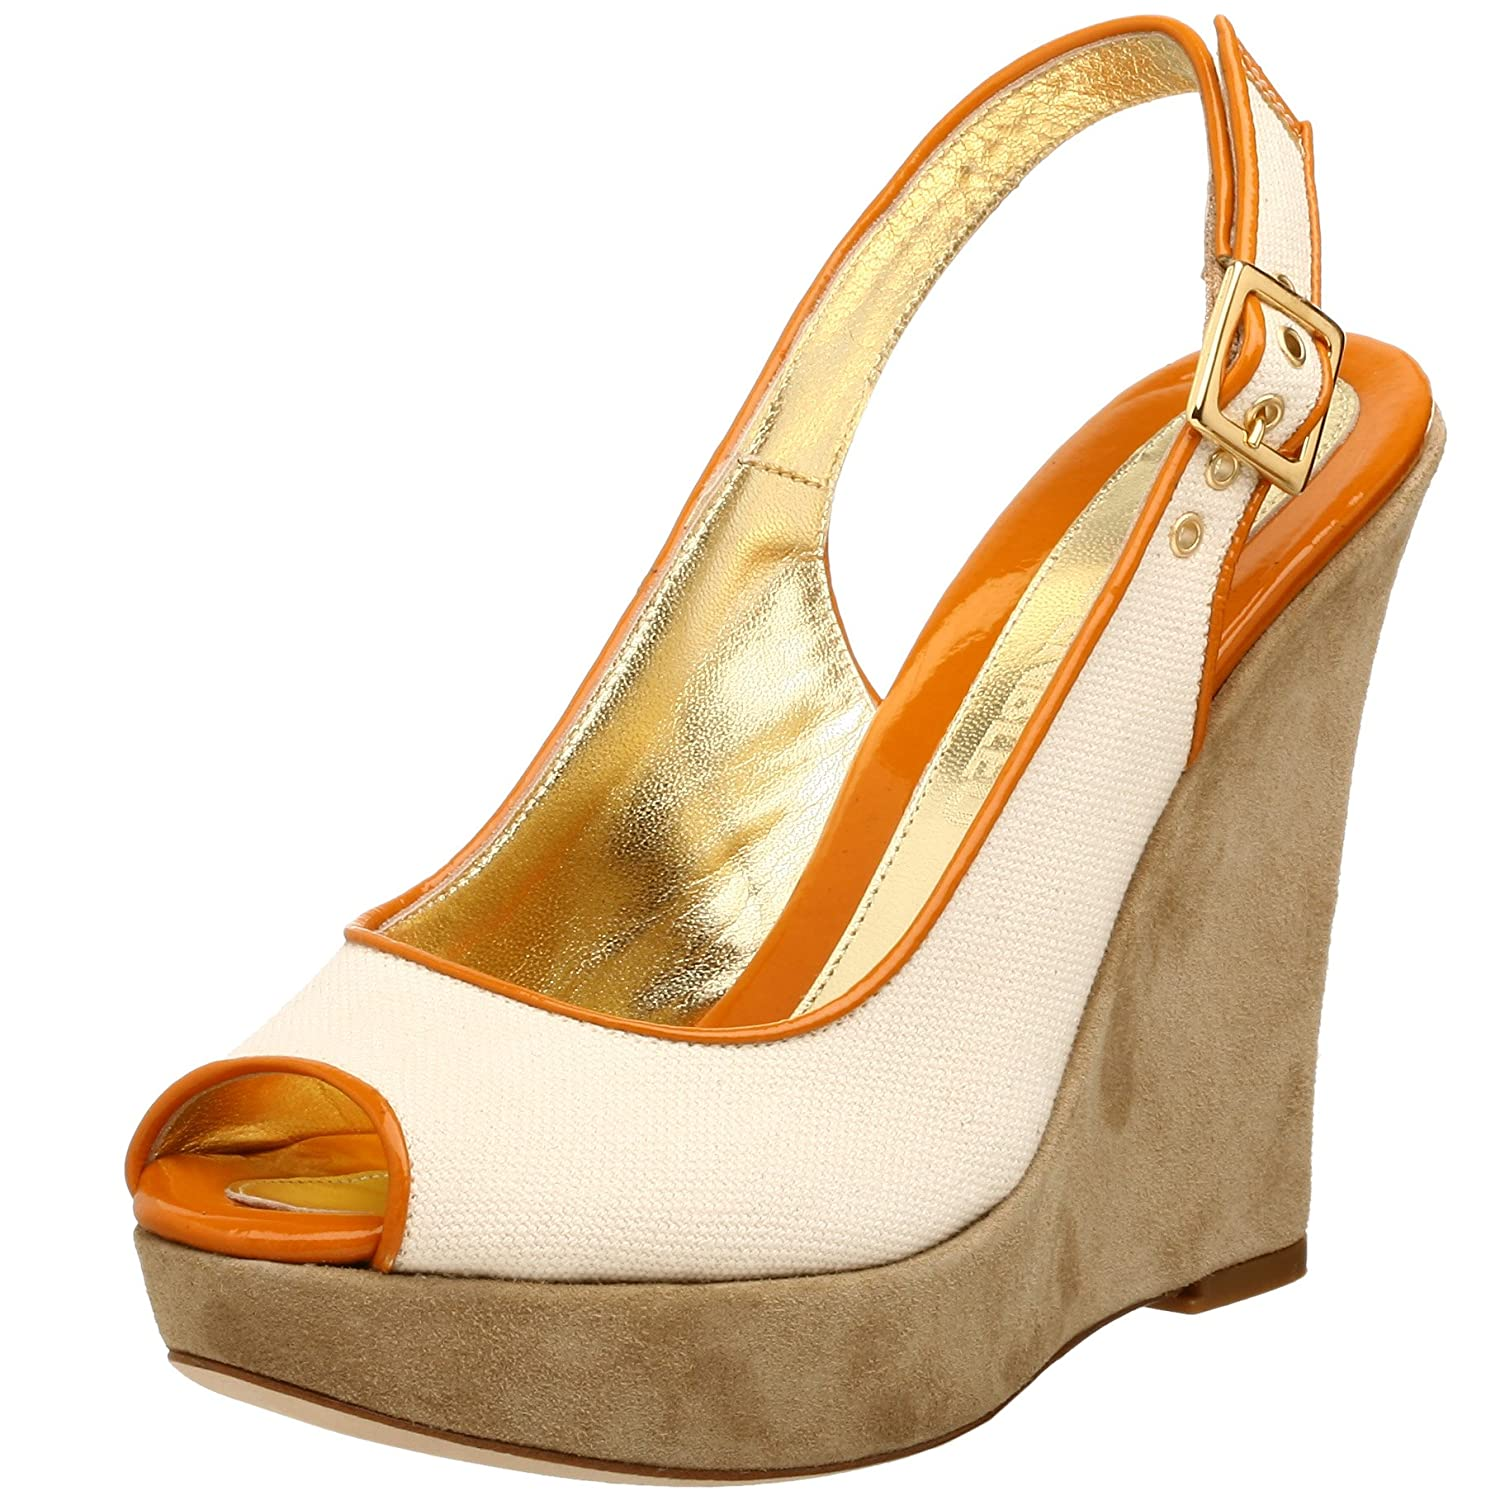 Endless.com: Goldenbleu Women&#039;s Sydney Wedge Sandal: Categories - Free Overnight Shipping &amp; Return Shipping from endless.com